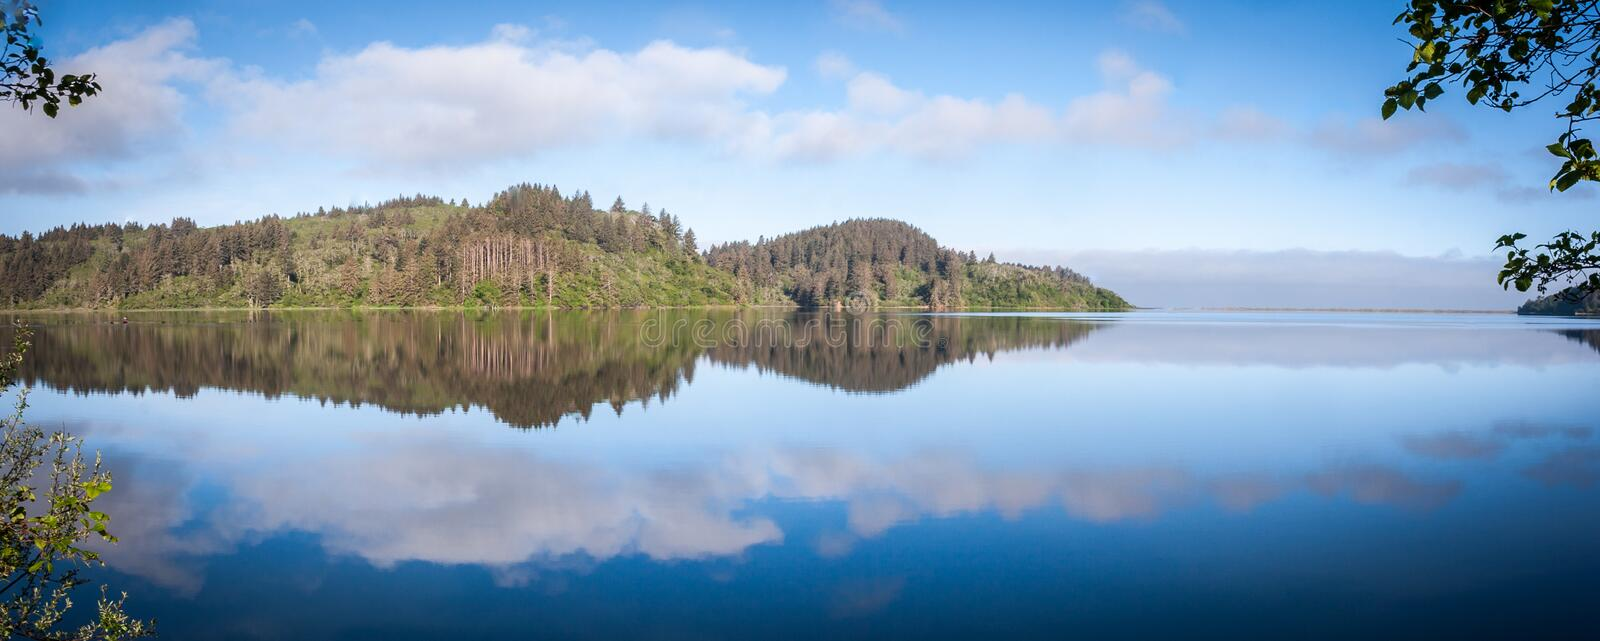 Panorama of the Humboldt Lagoons in Early Morning. A calm lagoon in the Humboldt National Lagoons State Park in California on an early morning, reflected in the stock photography